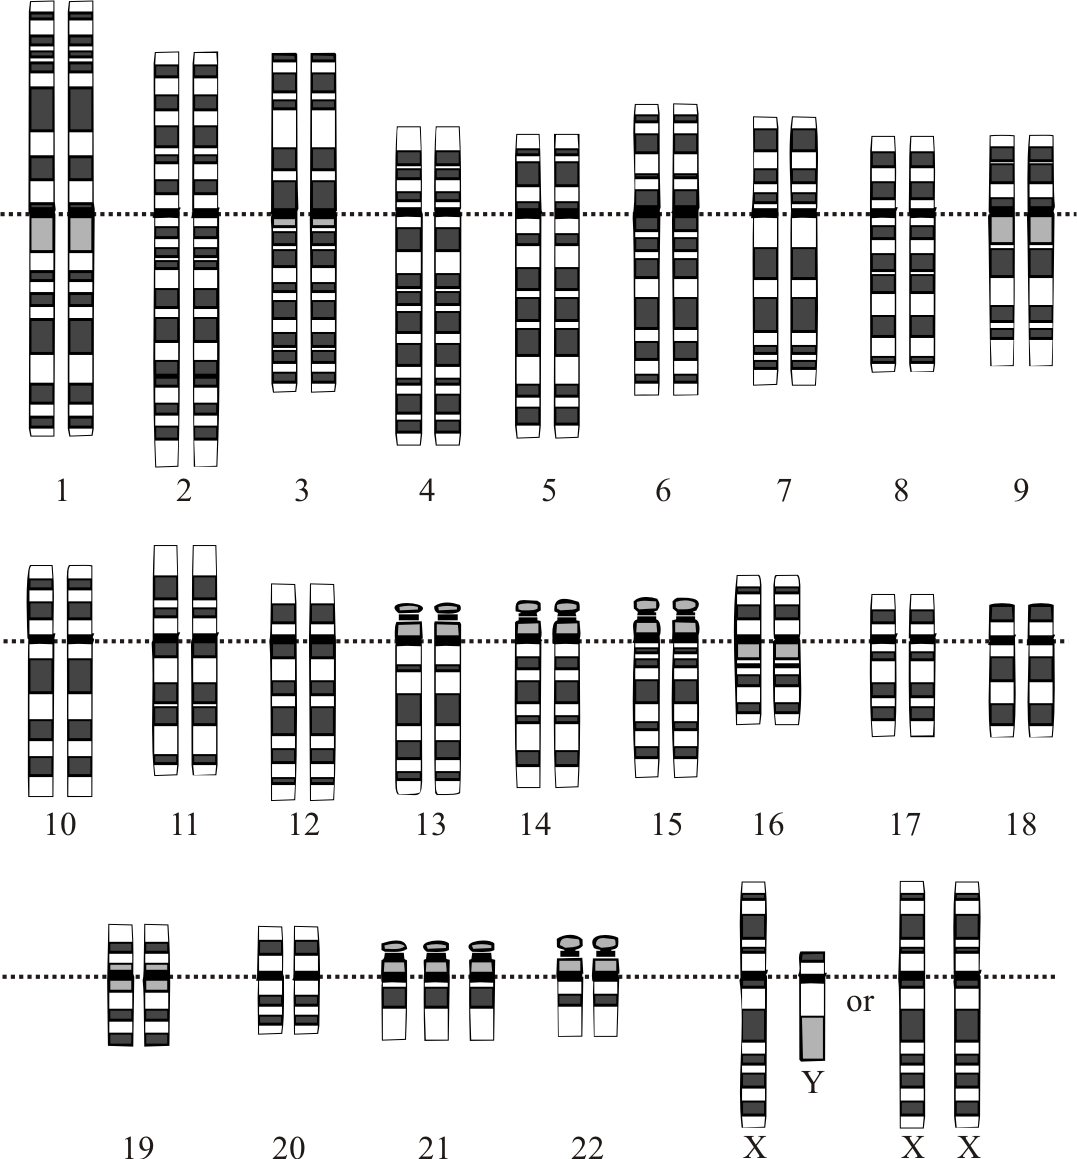 Karyotype for trisomy Down syndrome: Notice the three copies of chromosome 21